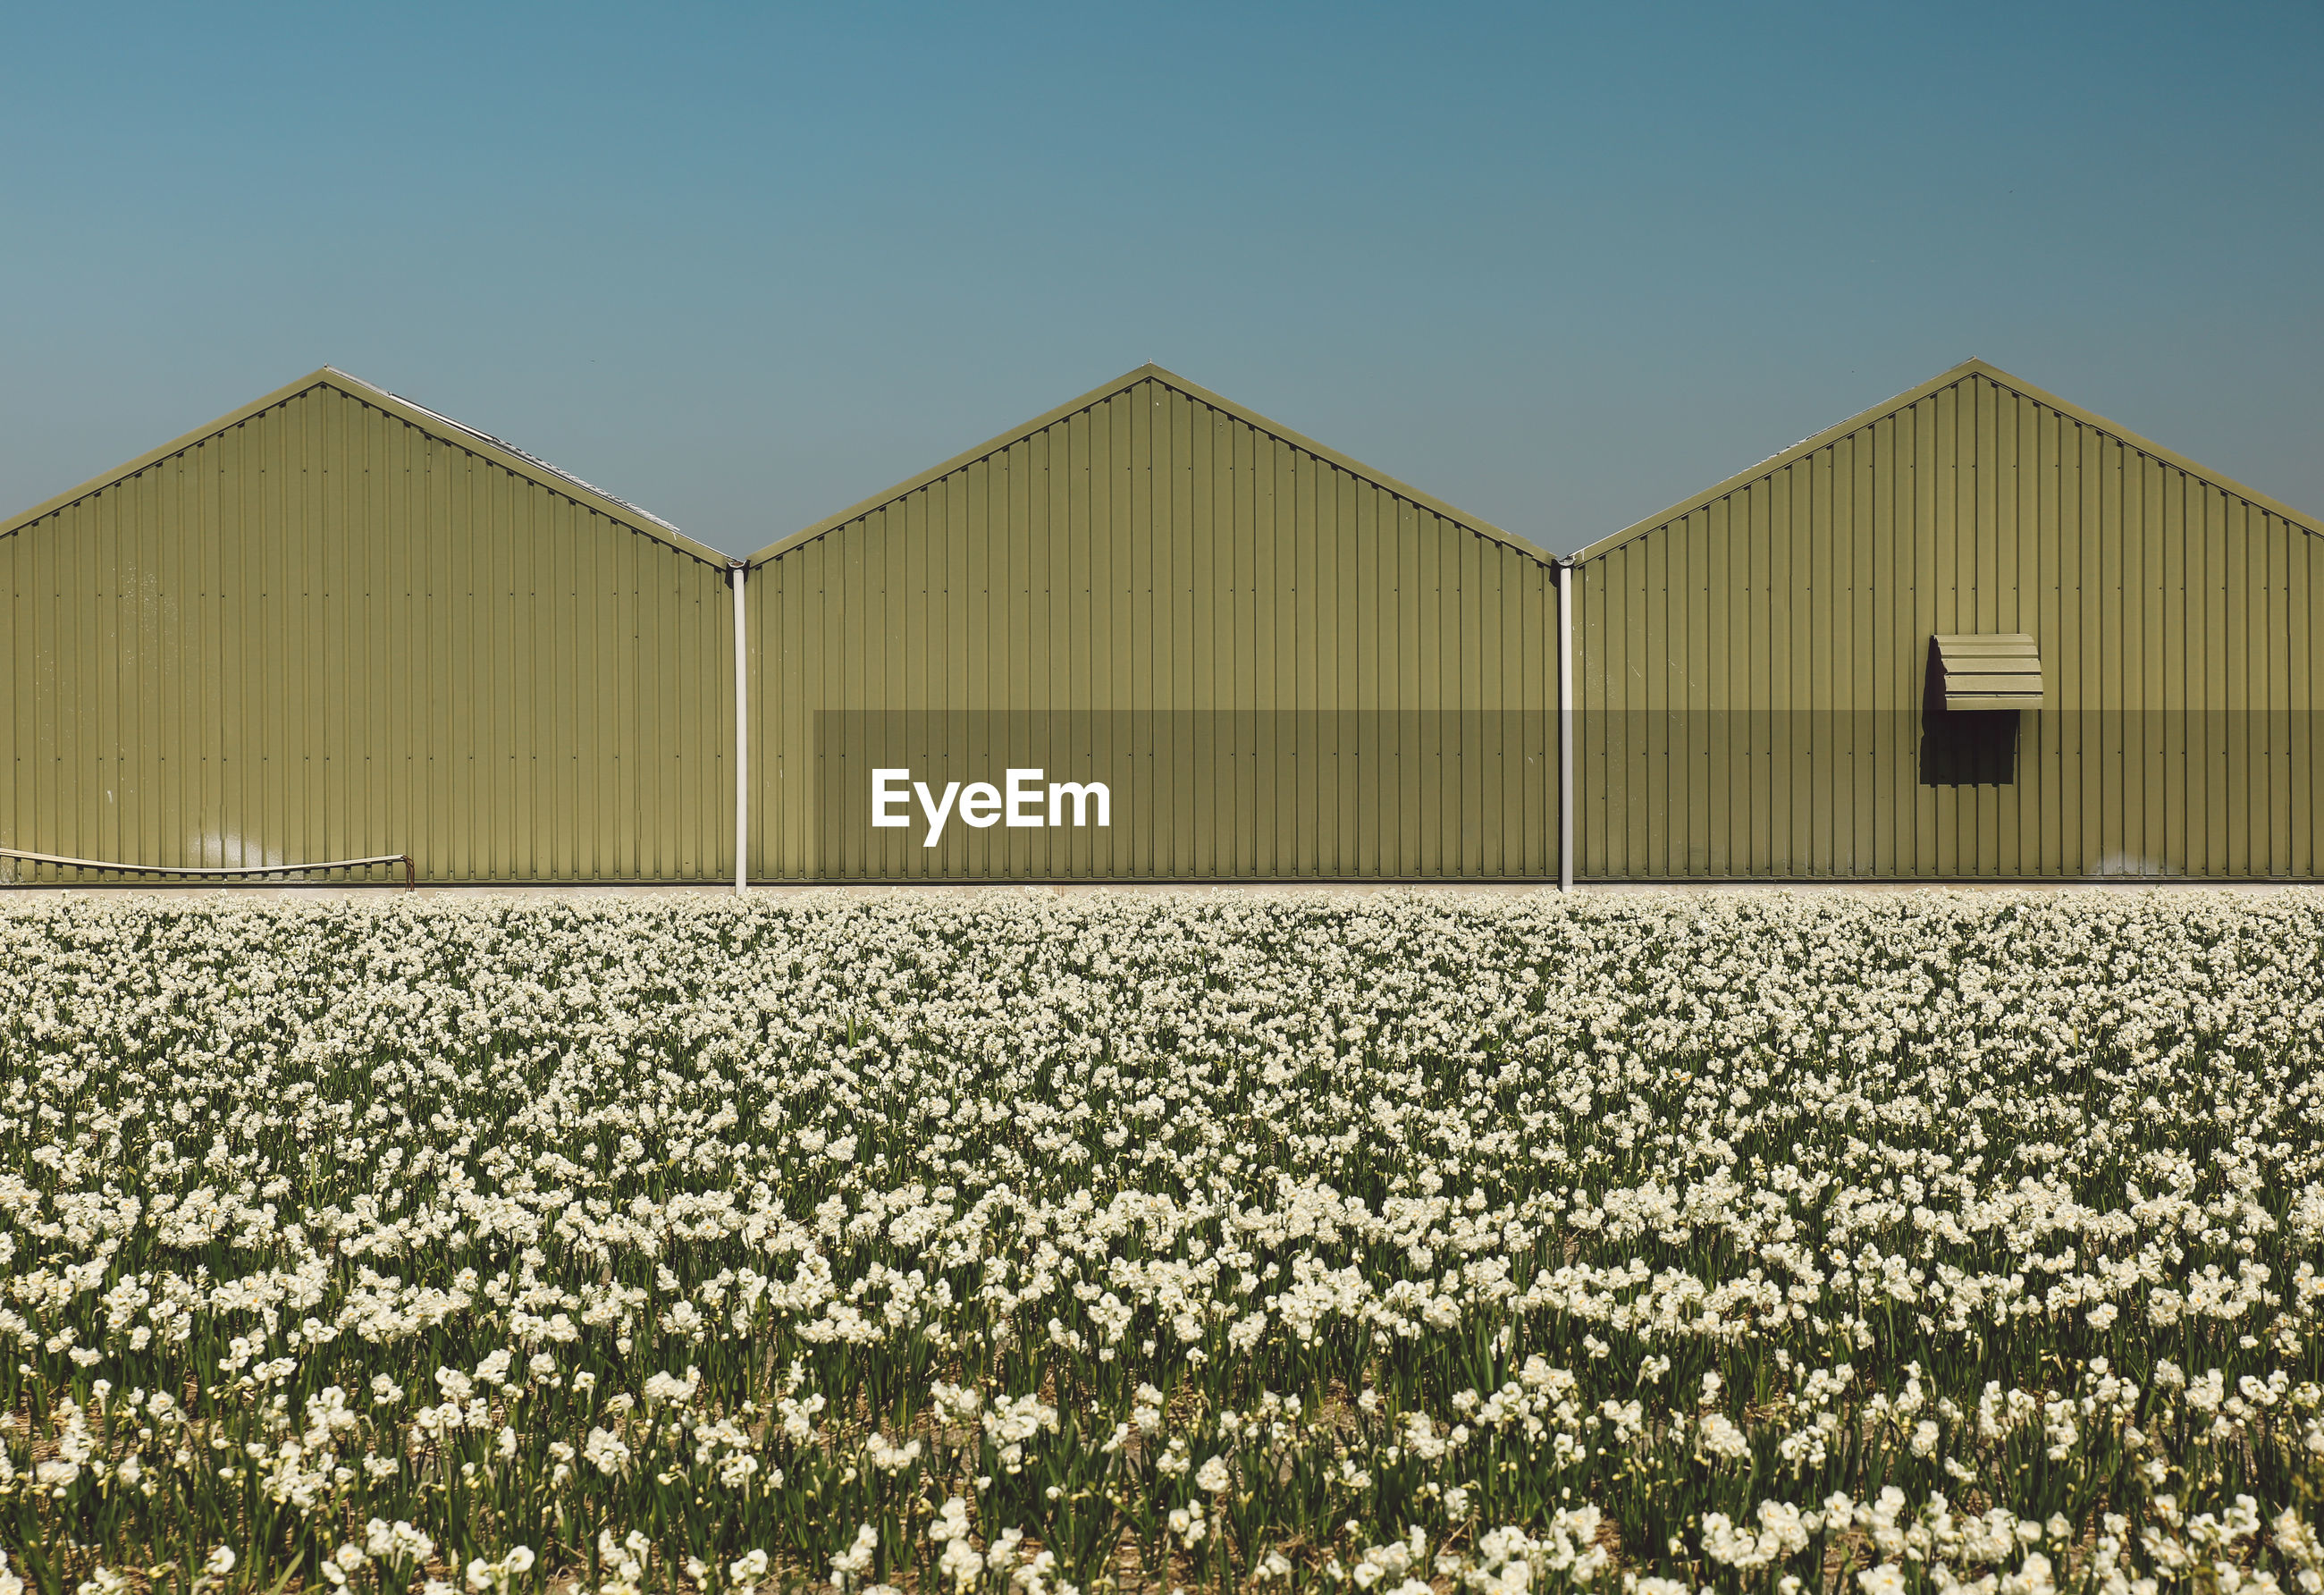 Flowering plants growing by barns against clear sky